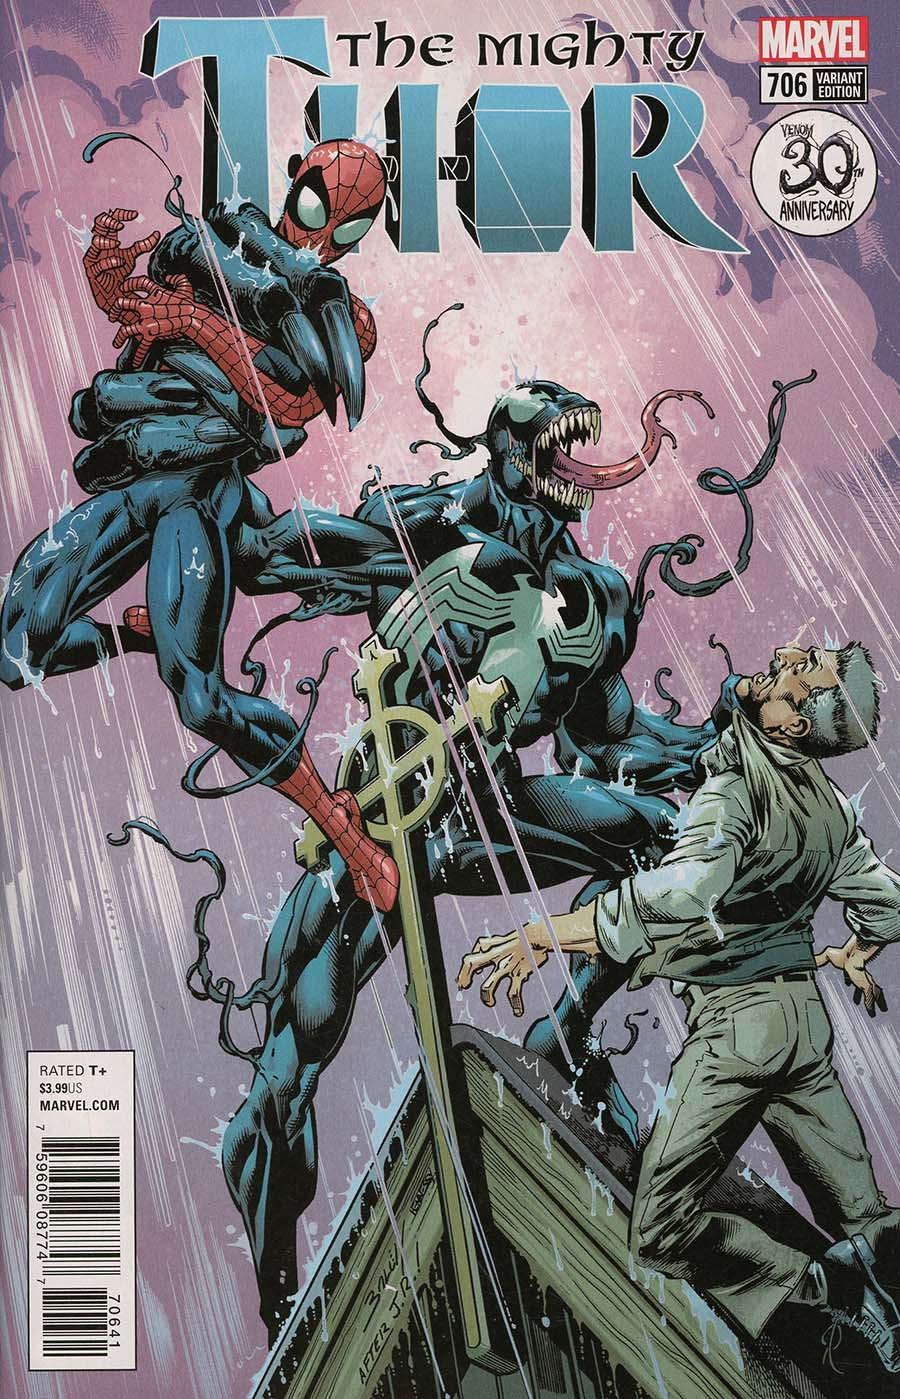 Mighty Thor Vol 2 #706 Cover D Variant Mark Bagley Venom 30th Anniversary Cover